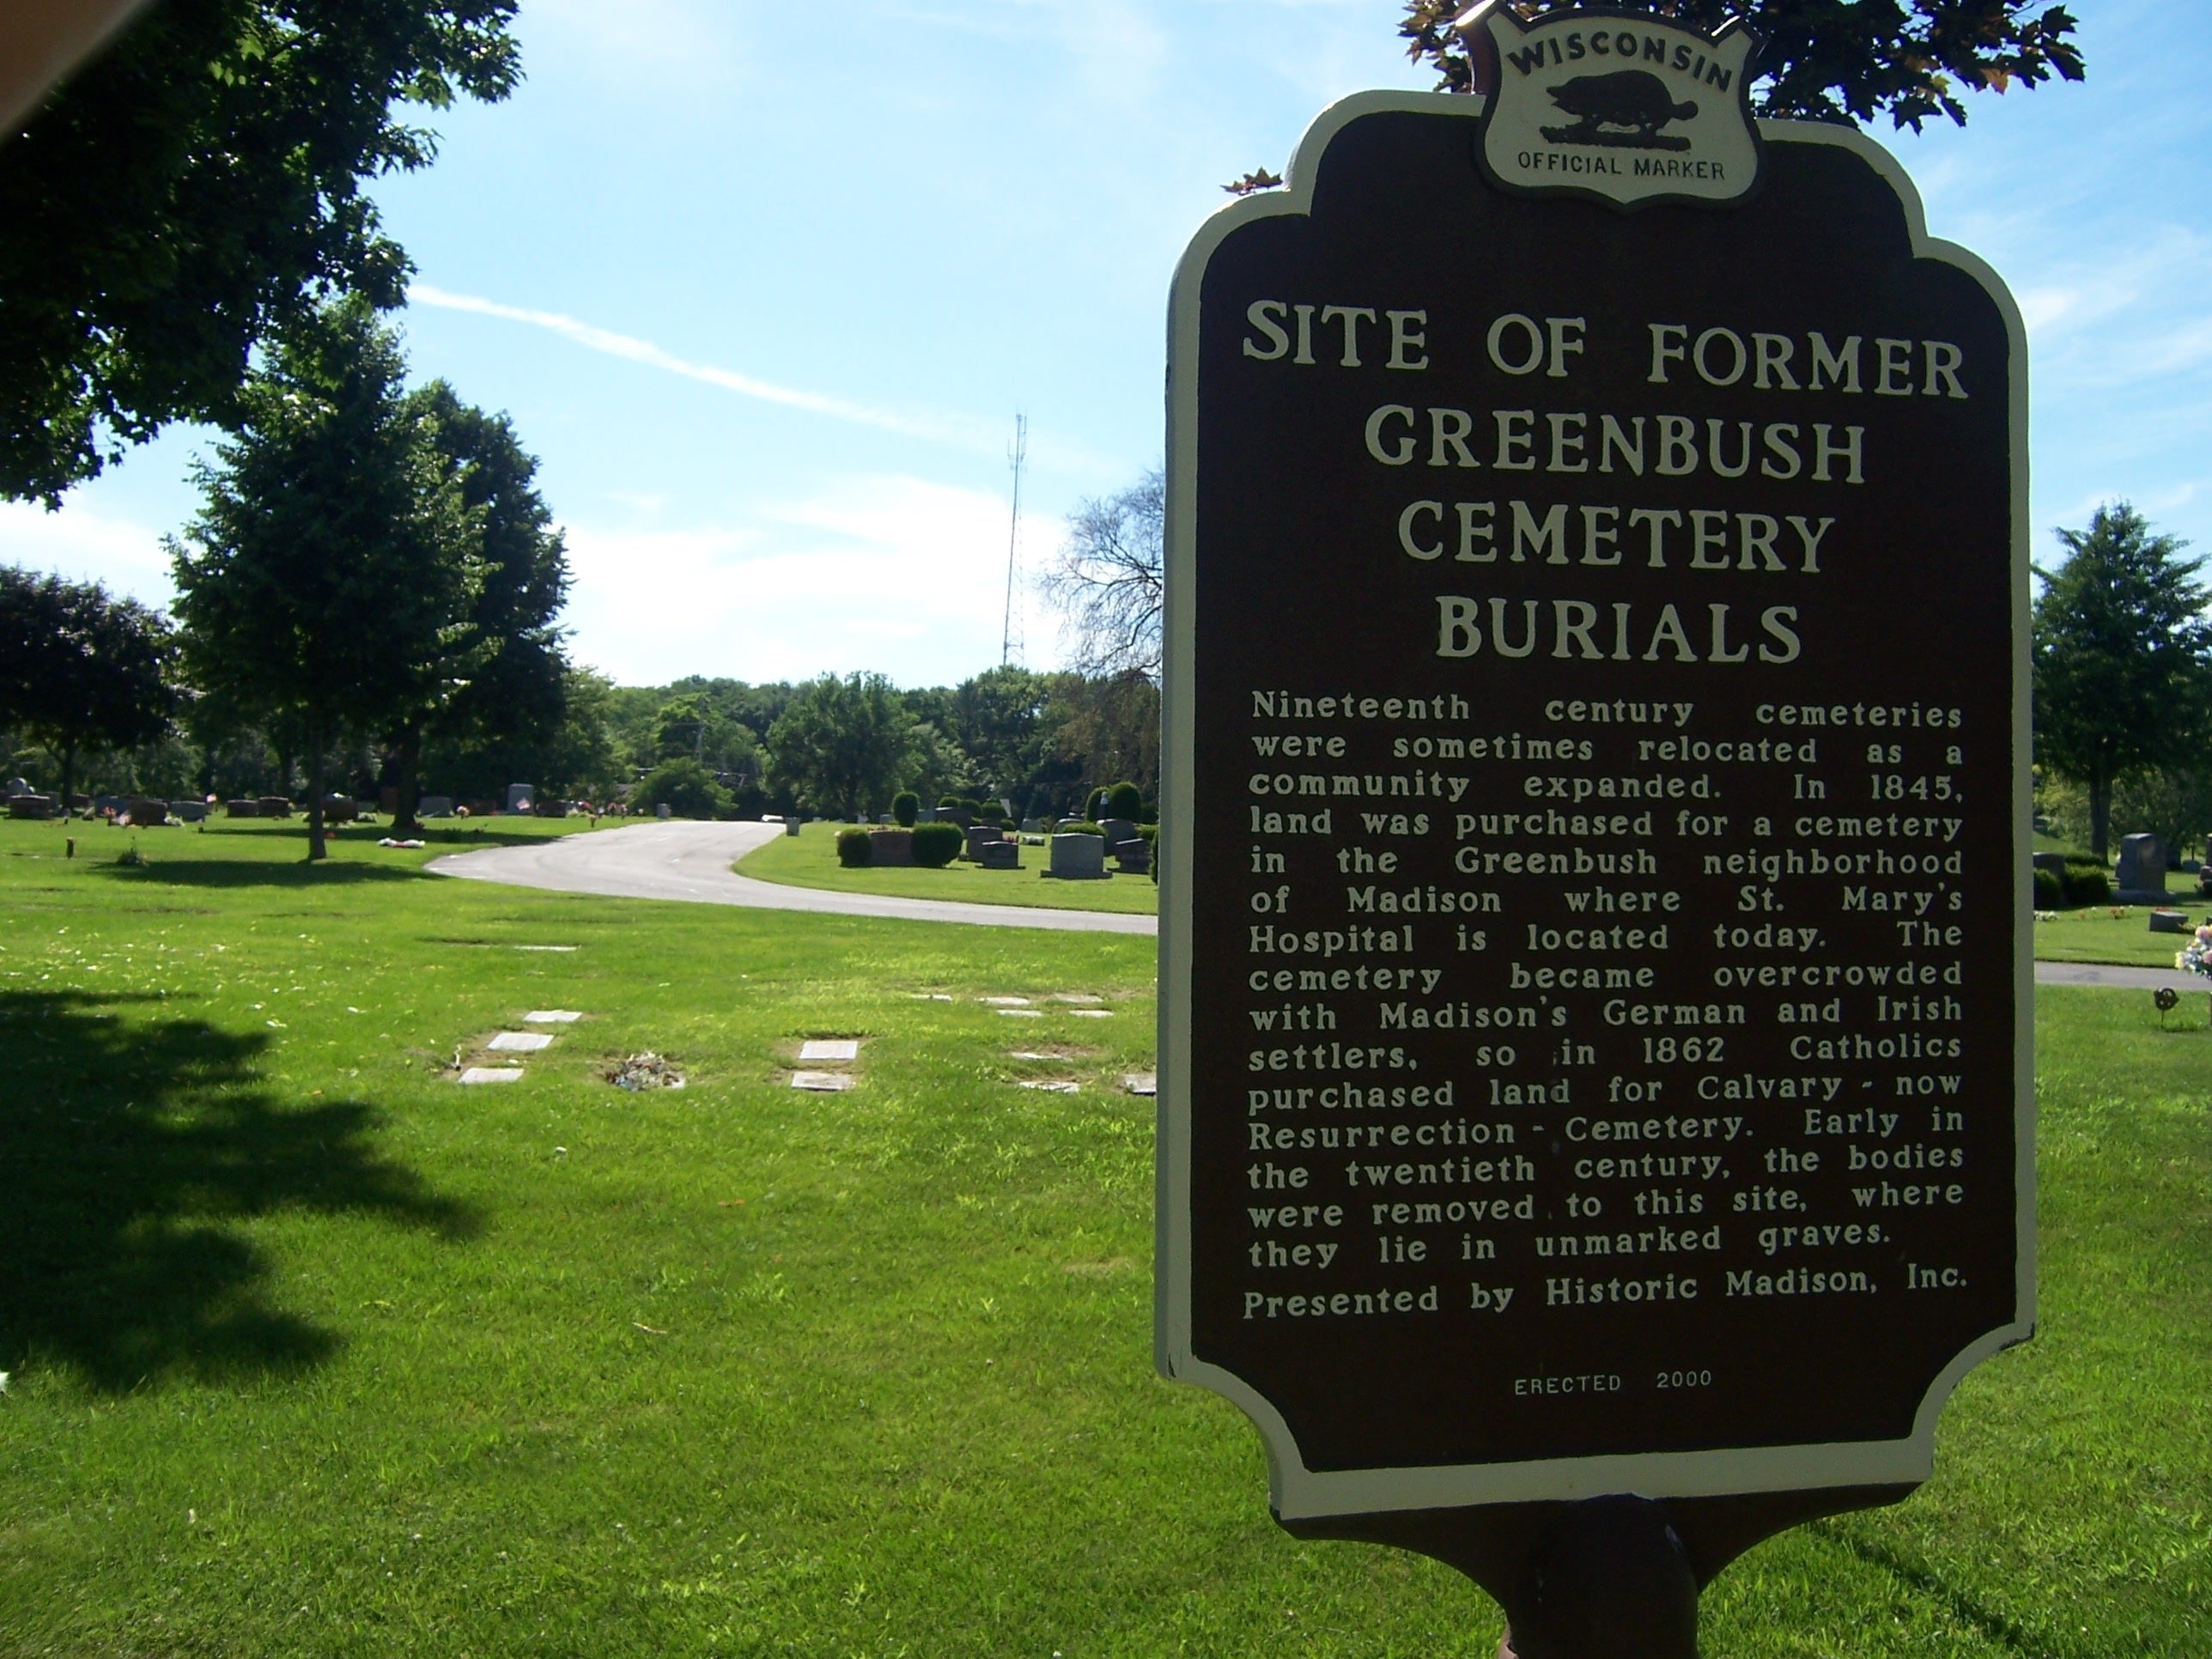 Site of Former Greenbush Cemetery Burials Marker